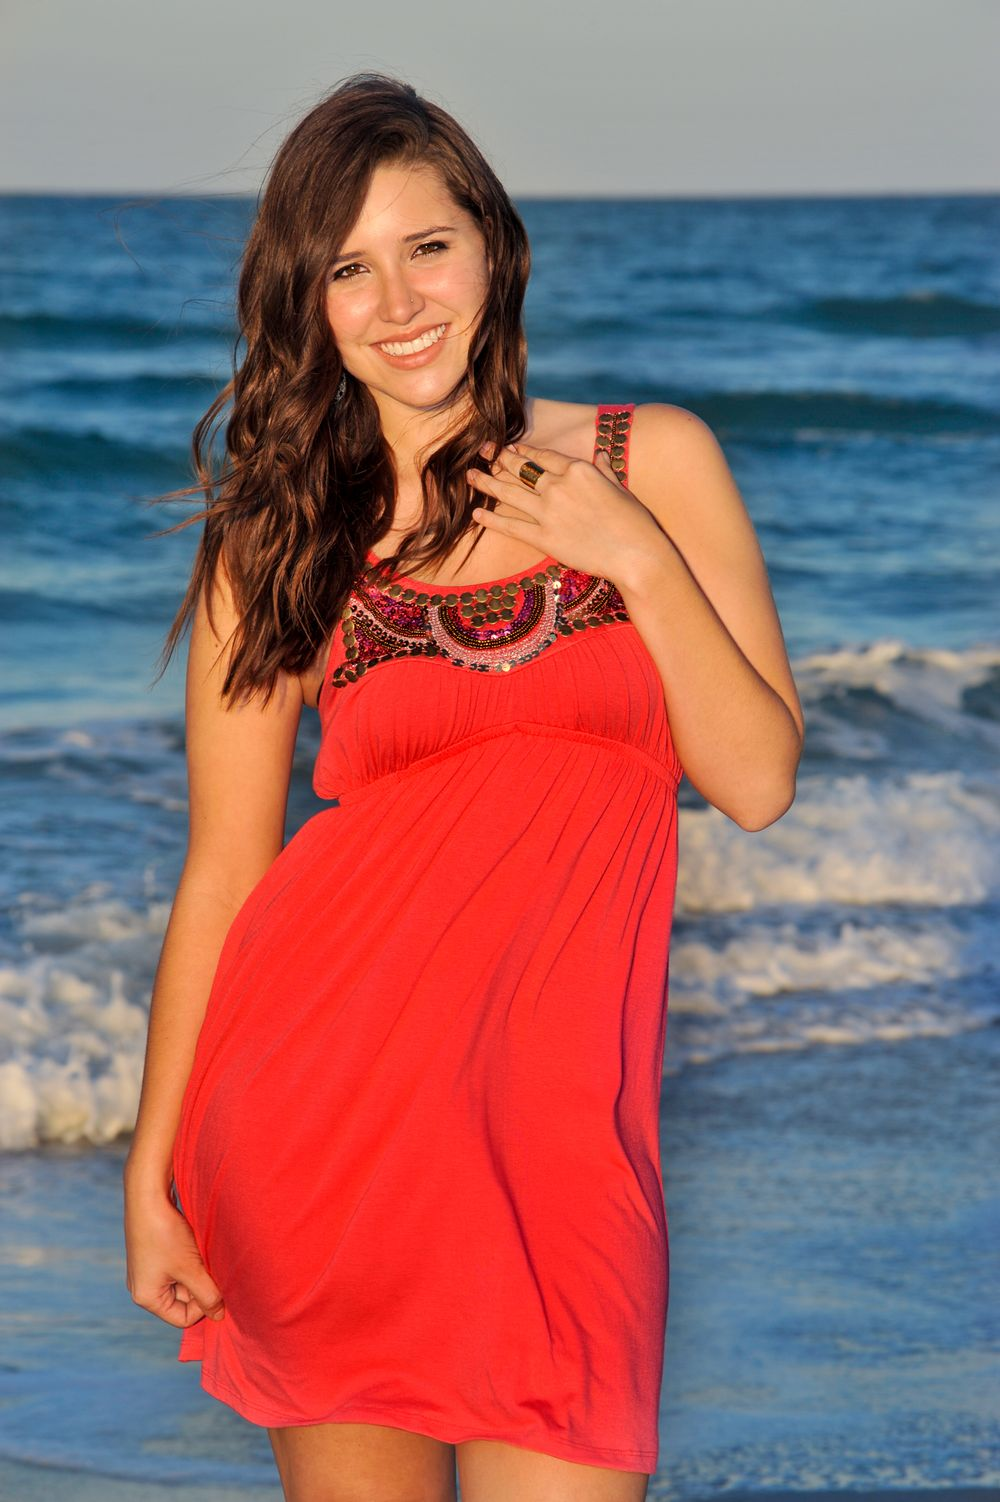 Playalinda Beach Beauty in coral dress